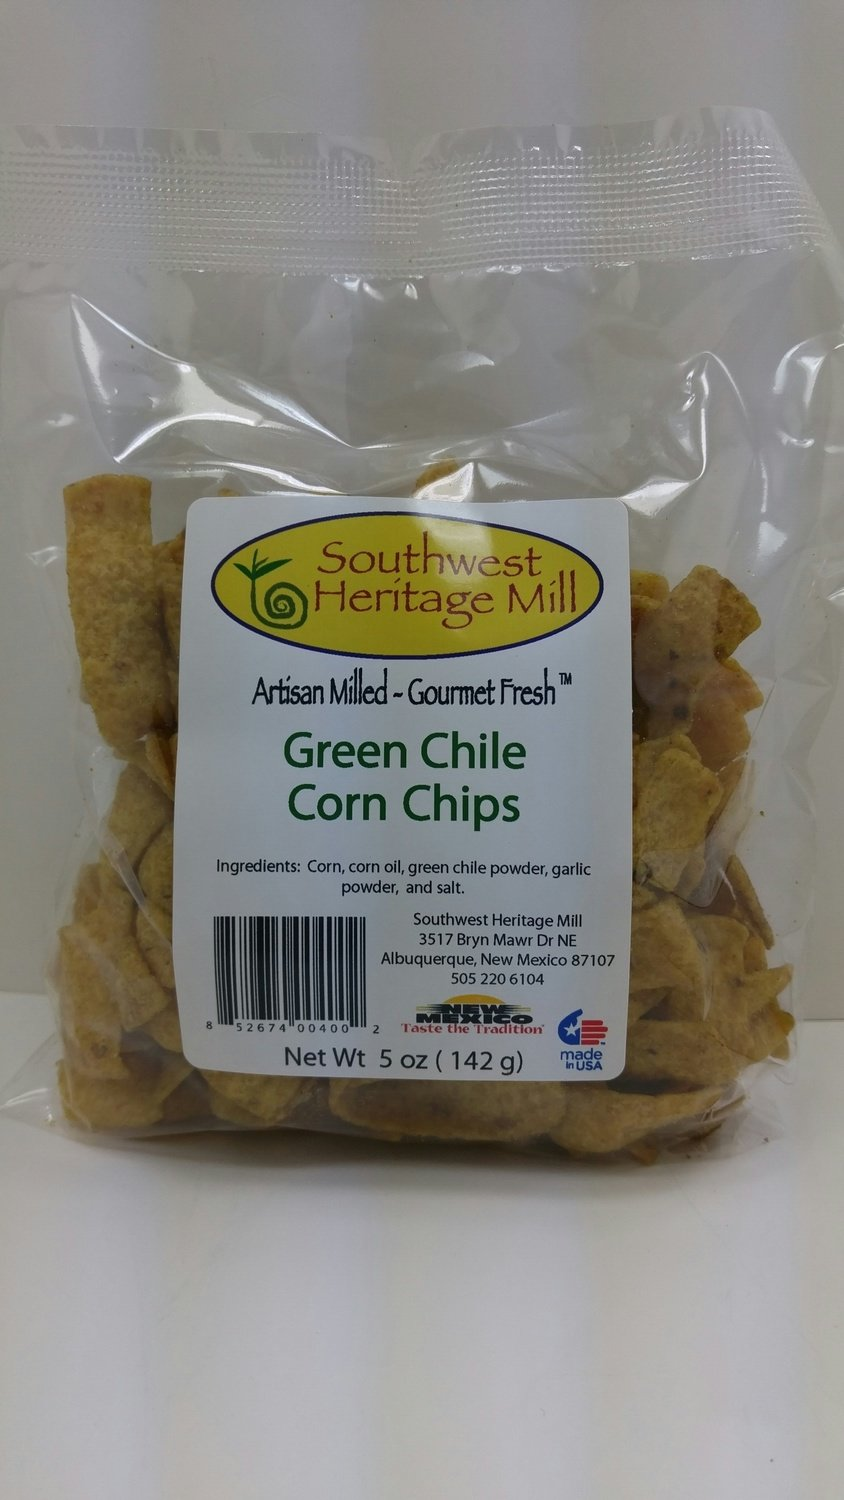 Green Chile Corn Chips